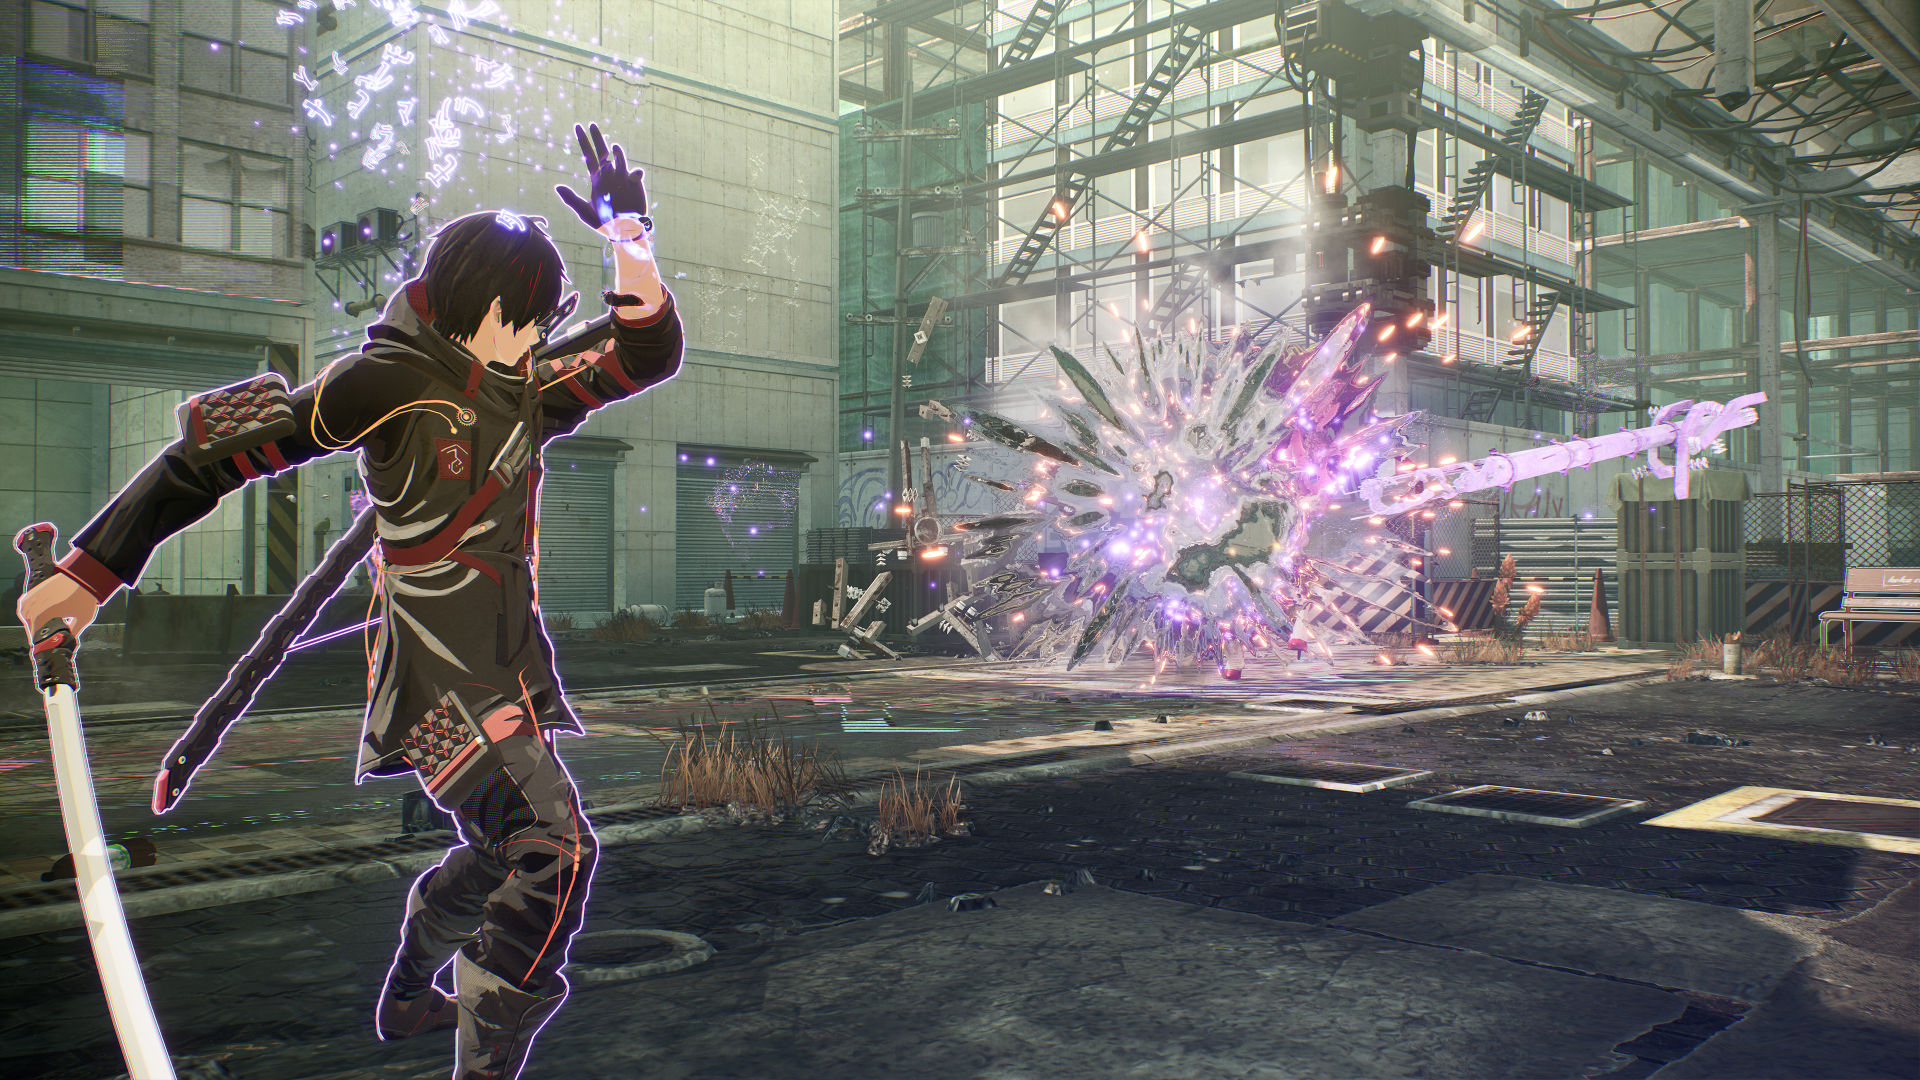 Yuito Sumeragi, a protagonist of Scarlet Nexus, uses the power of pyschokinesis to throw an object at an enemy, wreathed in purple light.